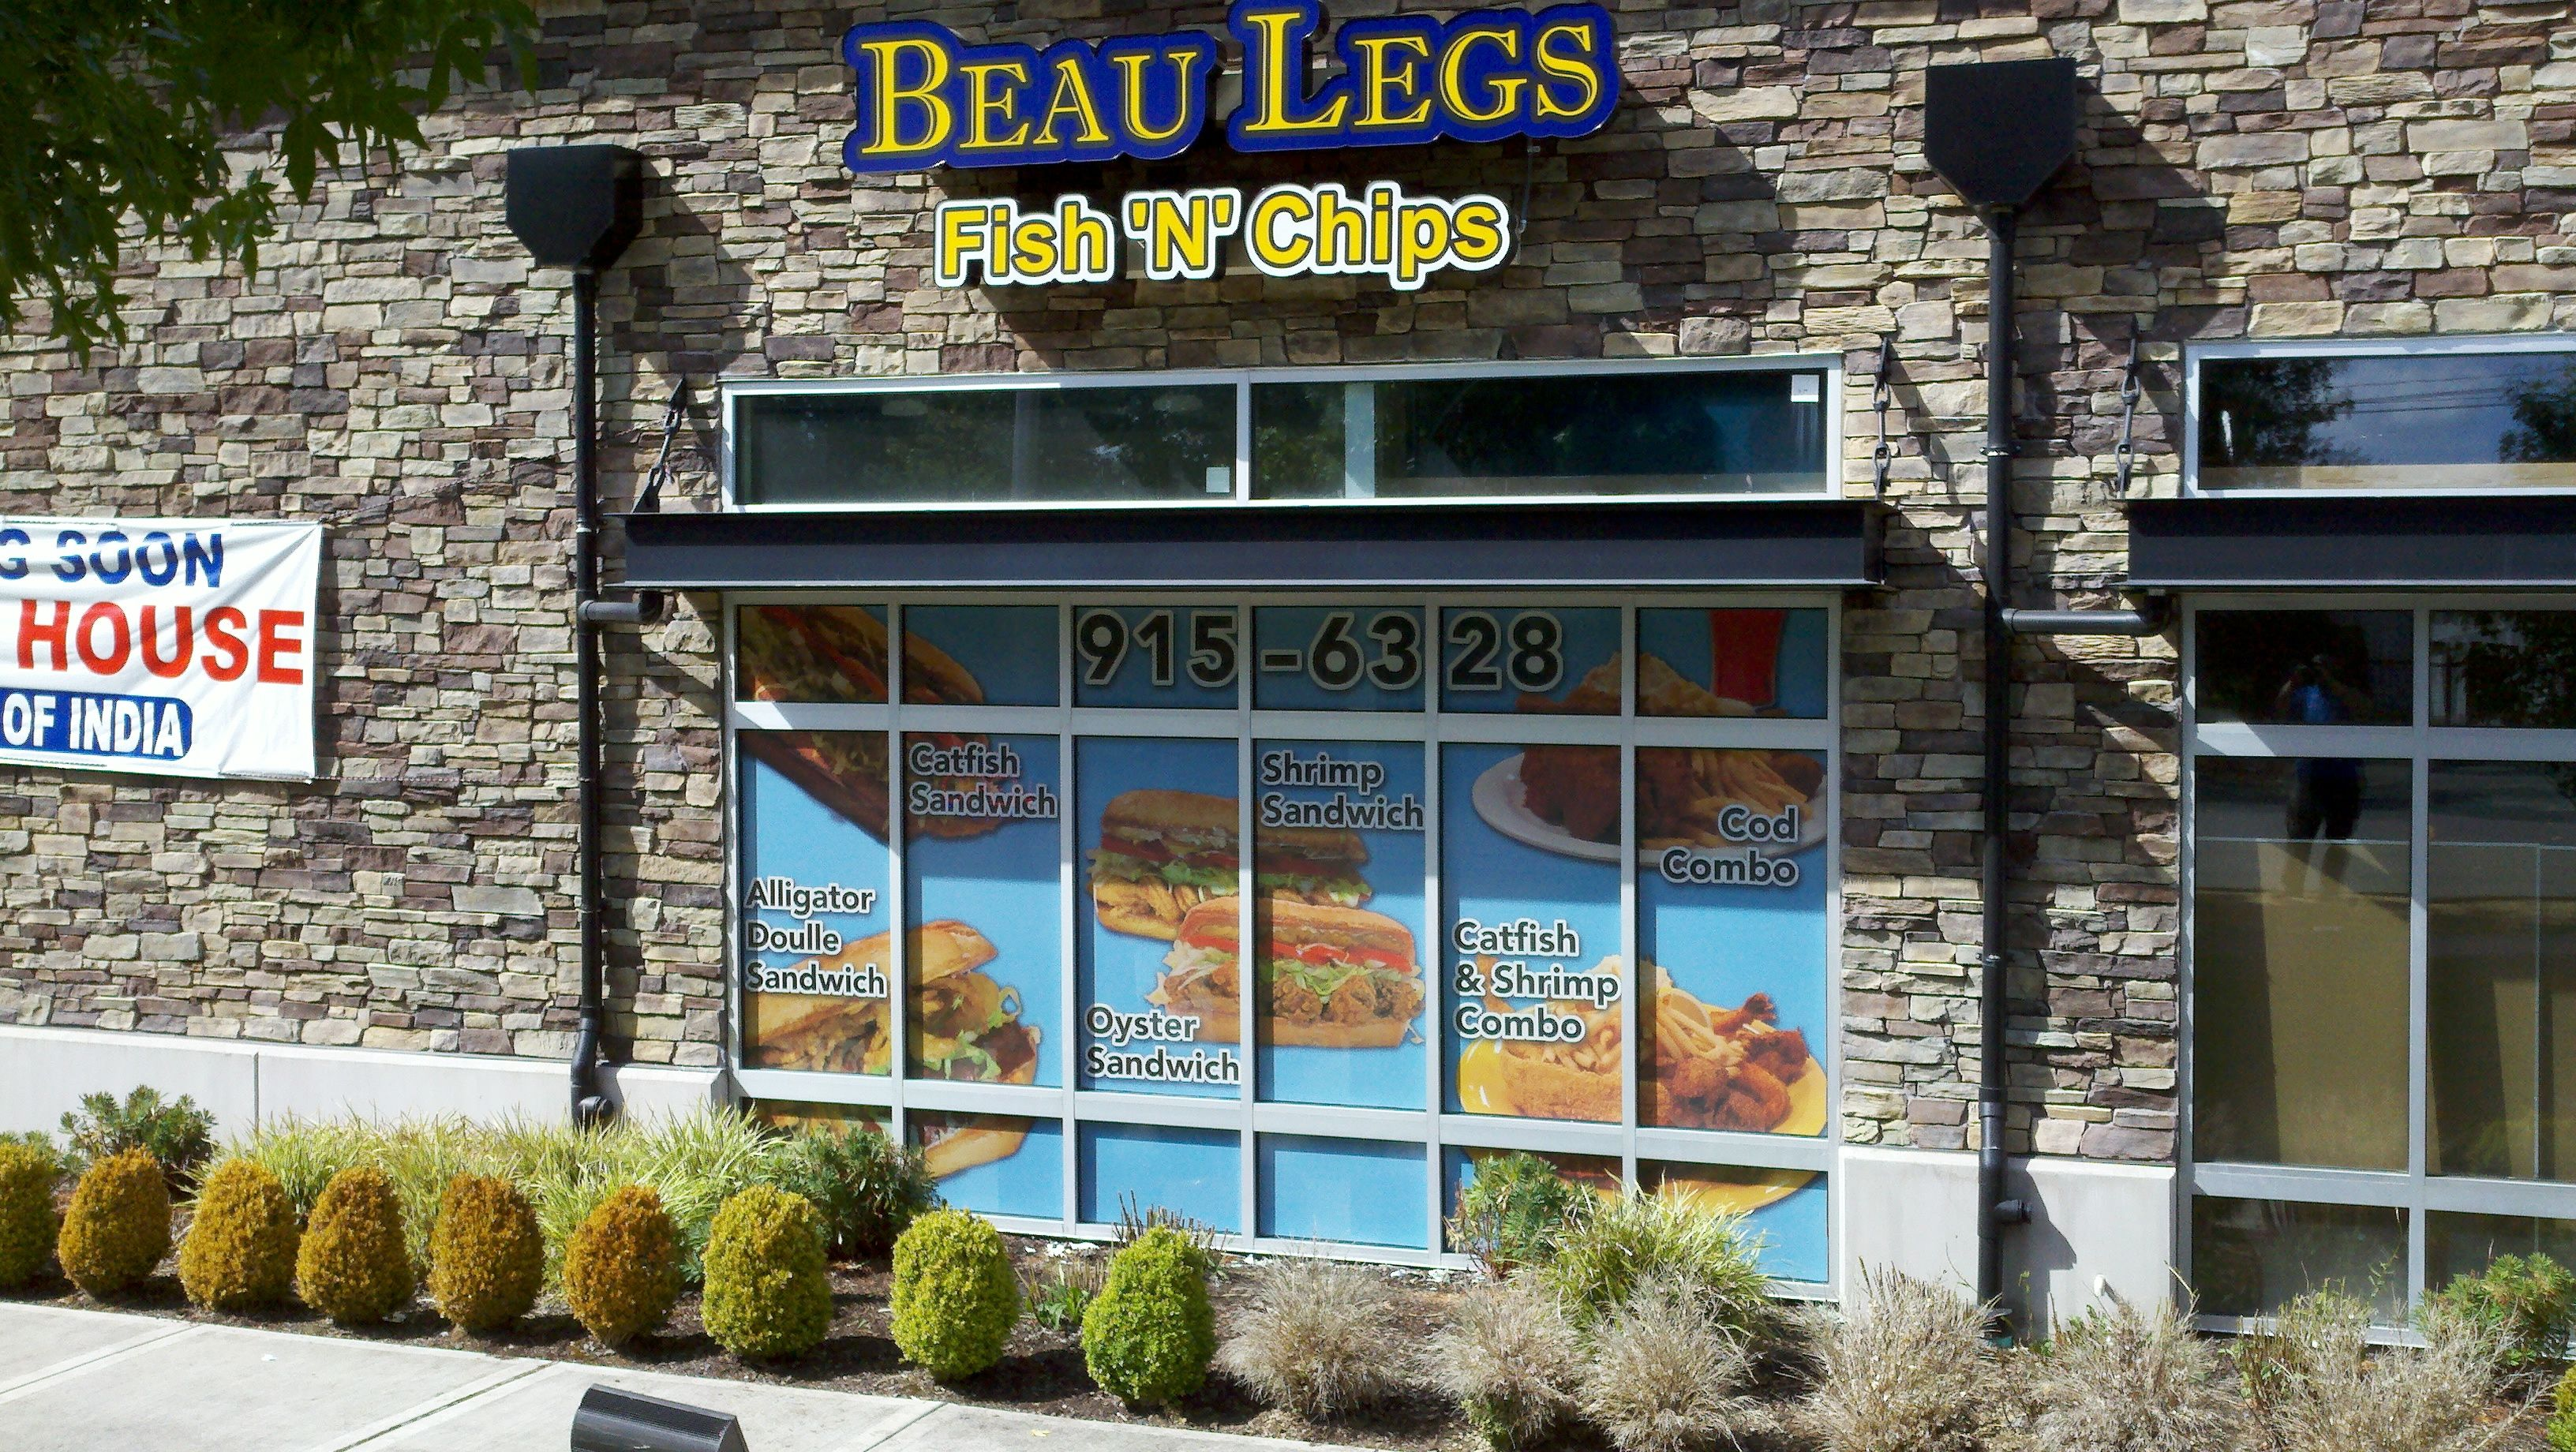 Another great project done perforated window decal for beau legs